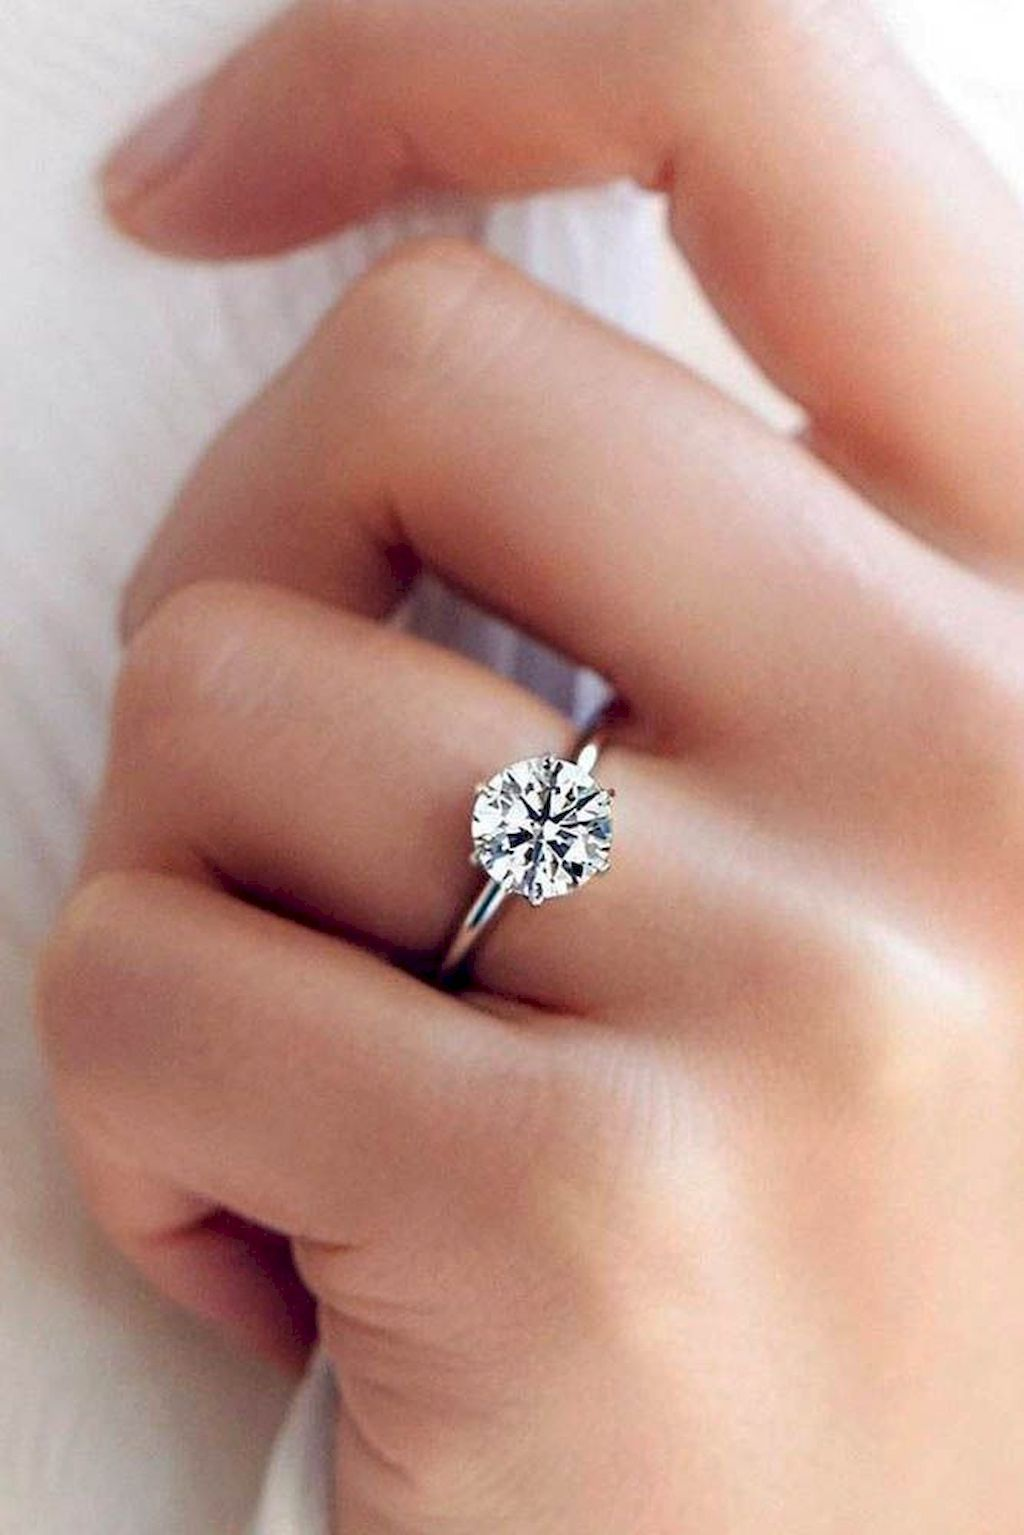 The Engagement Ring Is A That Indicates Person Wearing It Engaged To: Western Wedding Rings Marriage At Websimilar.org